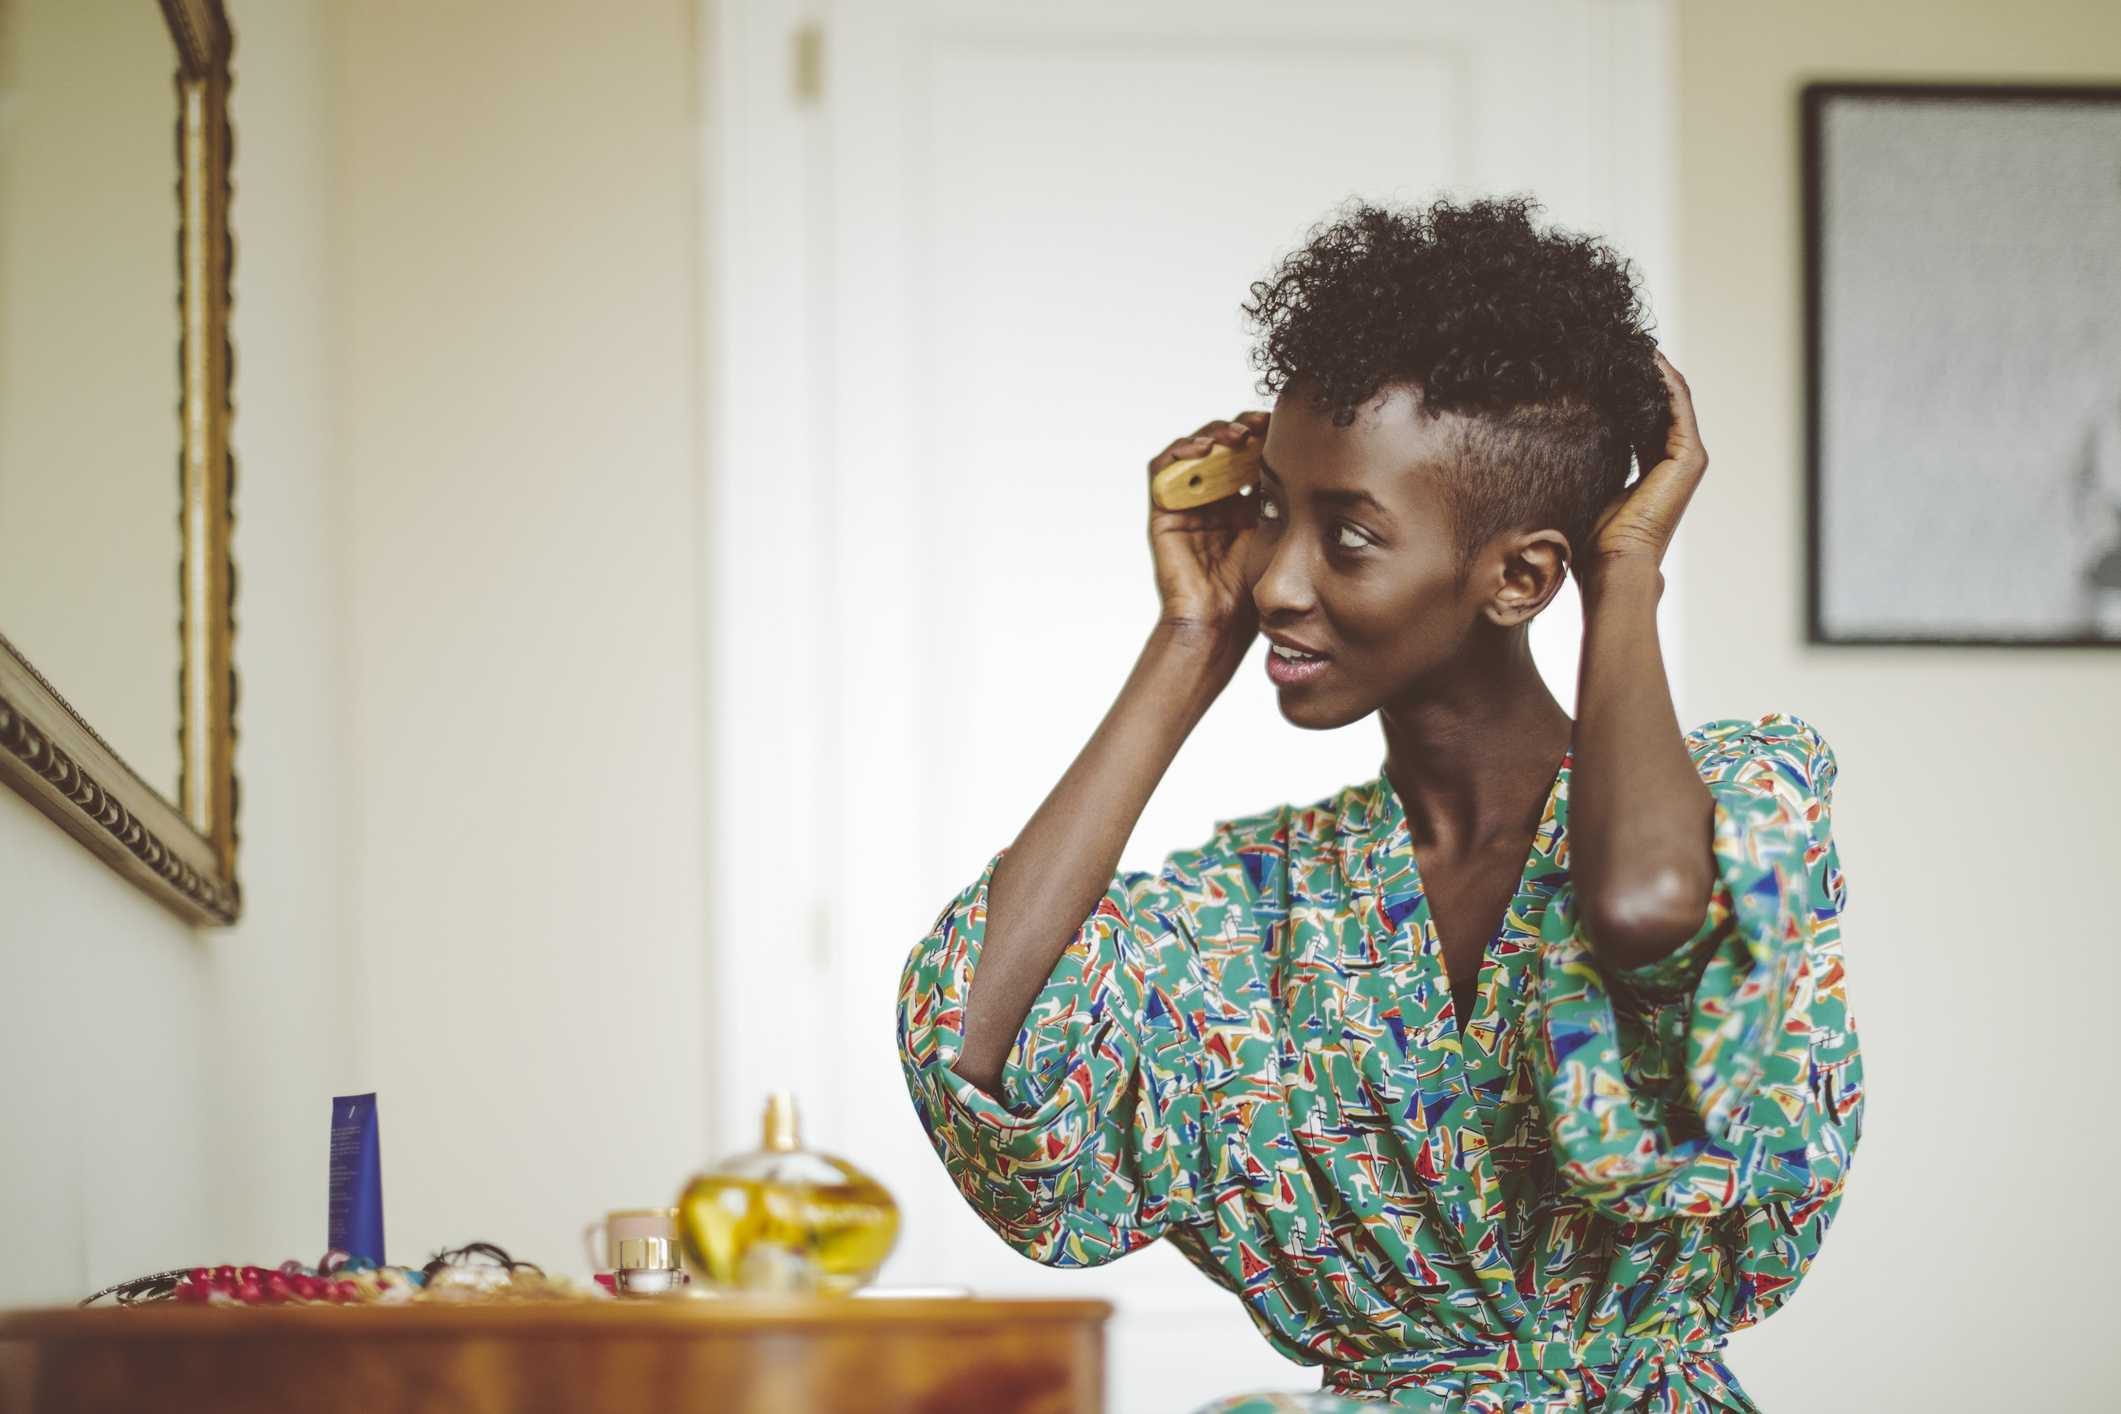 Woman combing hair while looking in mirror